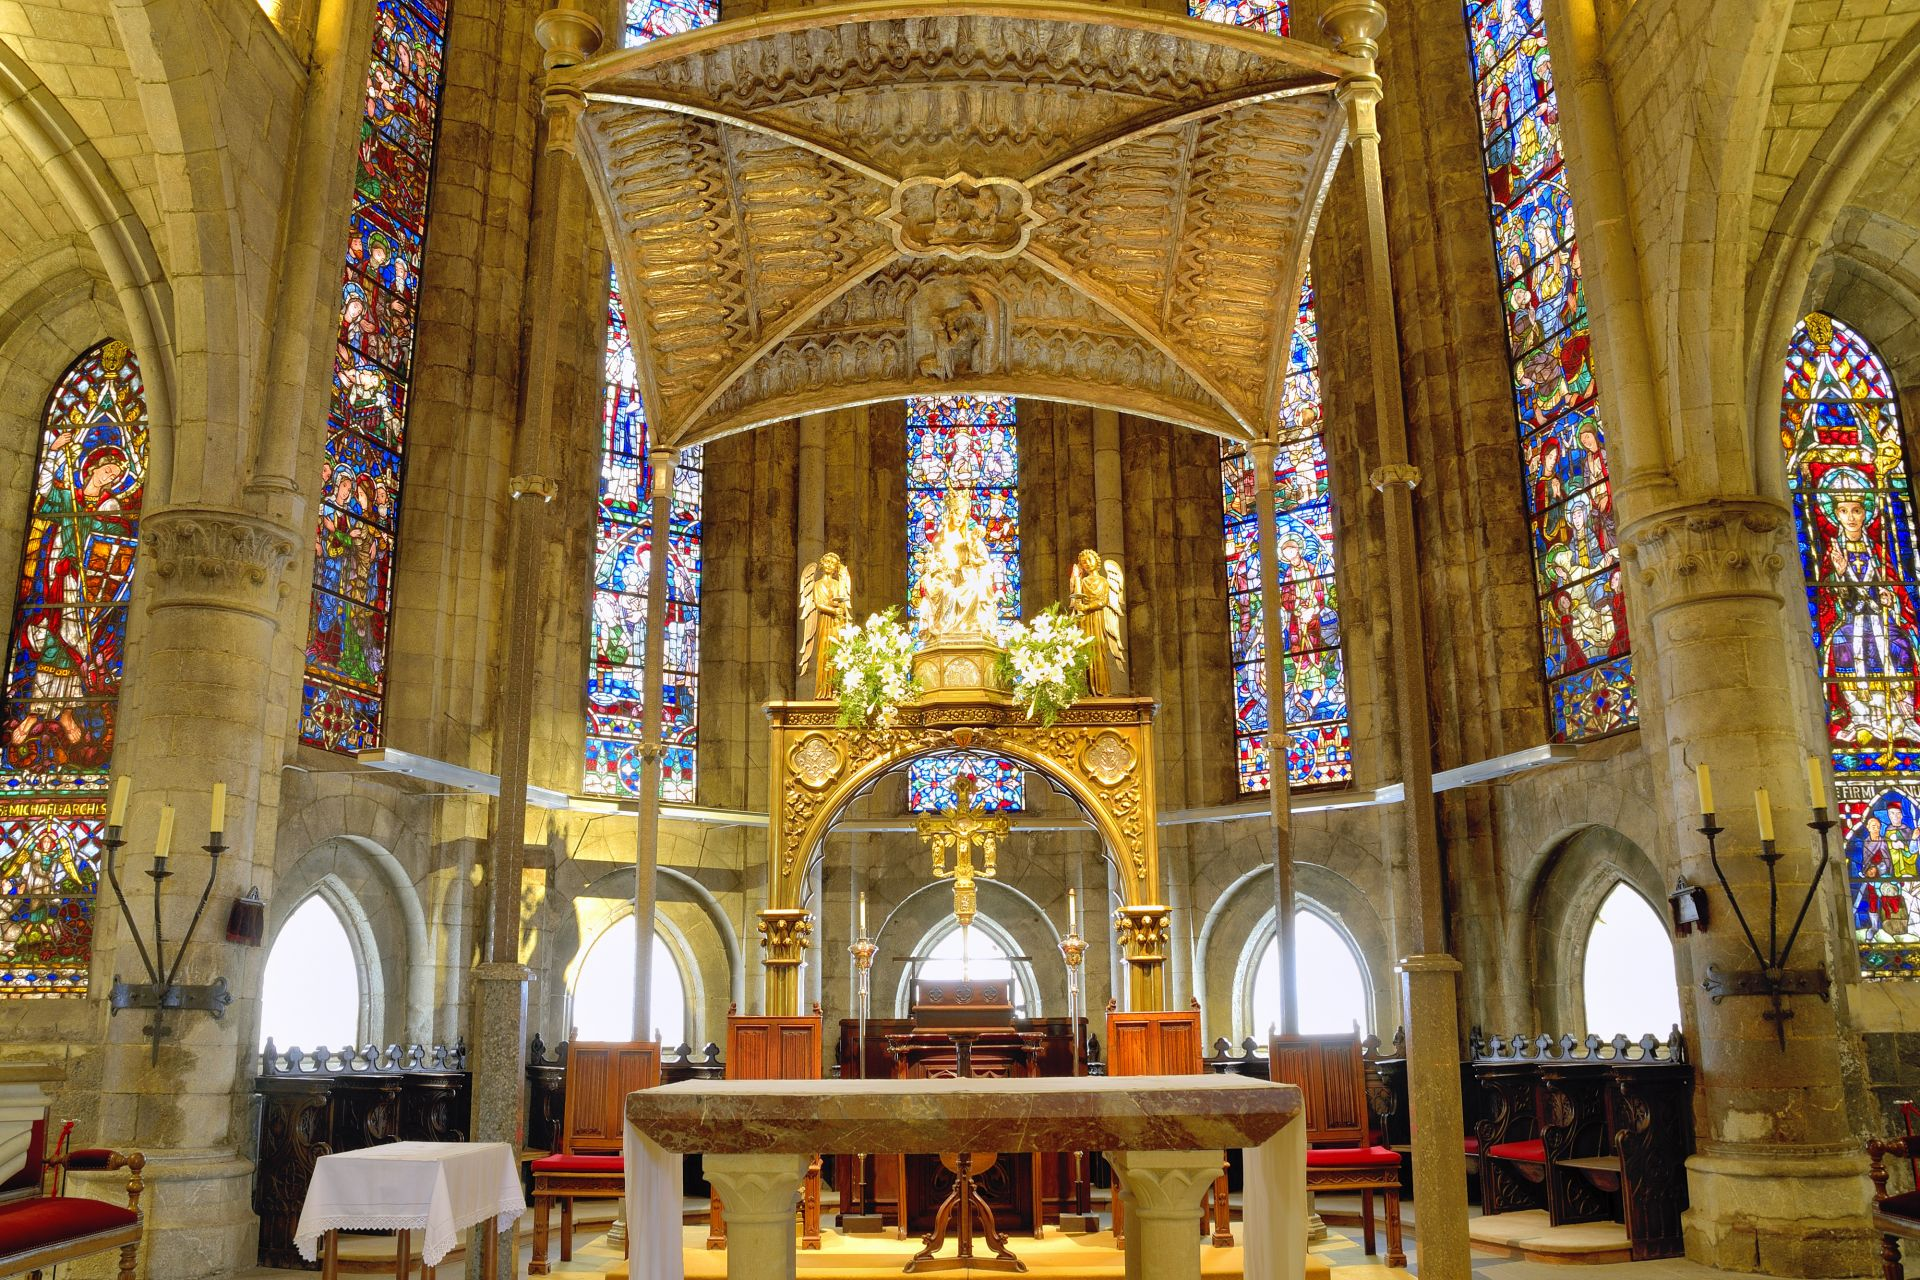 church, altar, mass, roncesvalles, stained glass windows, apse, temple, house of prayer, house of god, basilica, cathedral, architecture